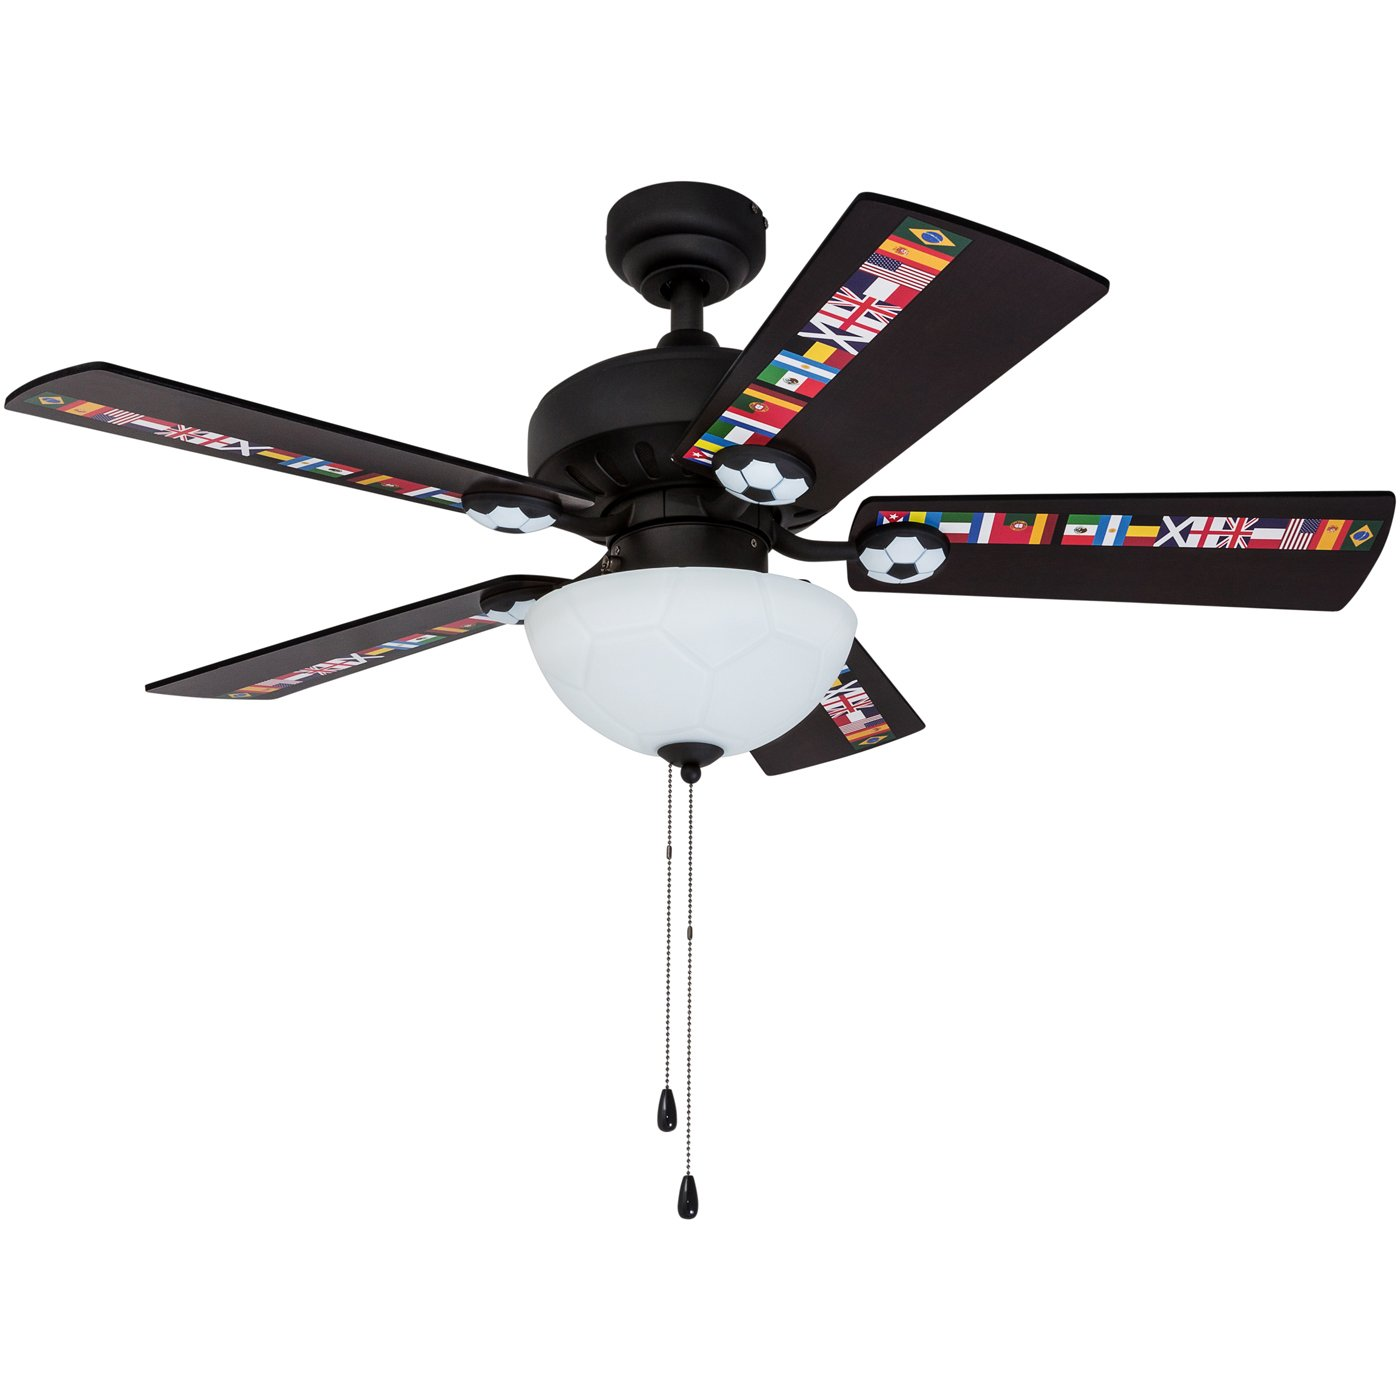 Prominence Home 40274-01 Soccer Ceiling International Sports Fan, 48 inches, Black